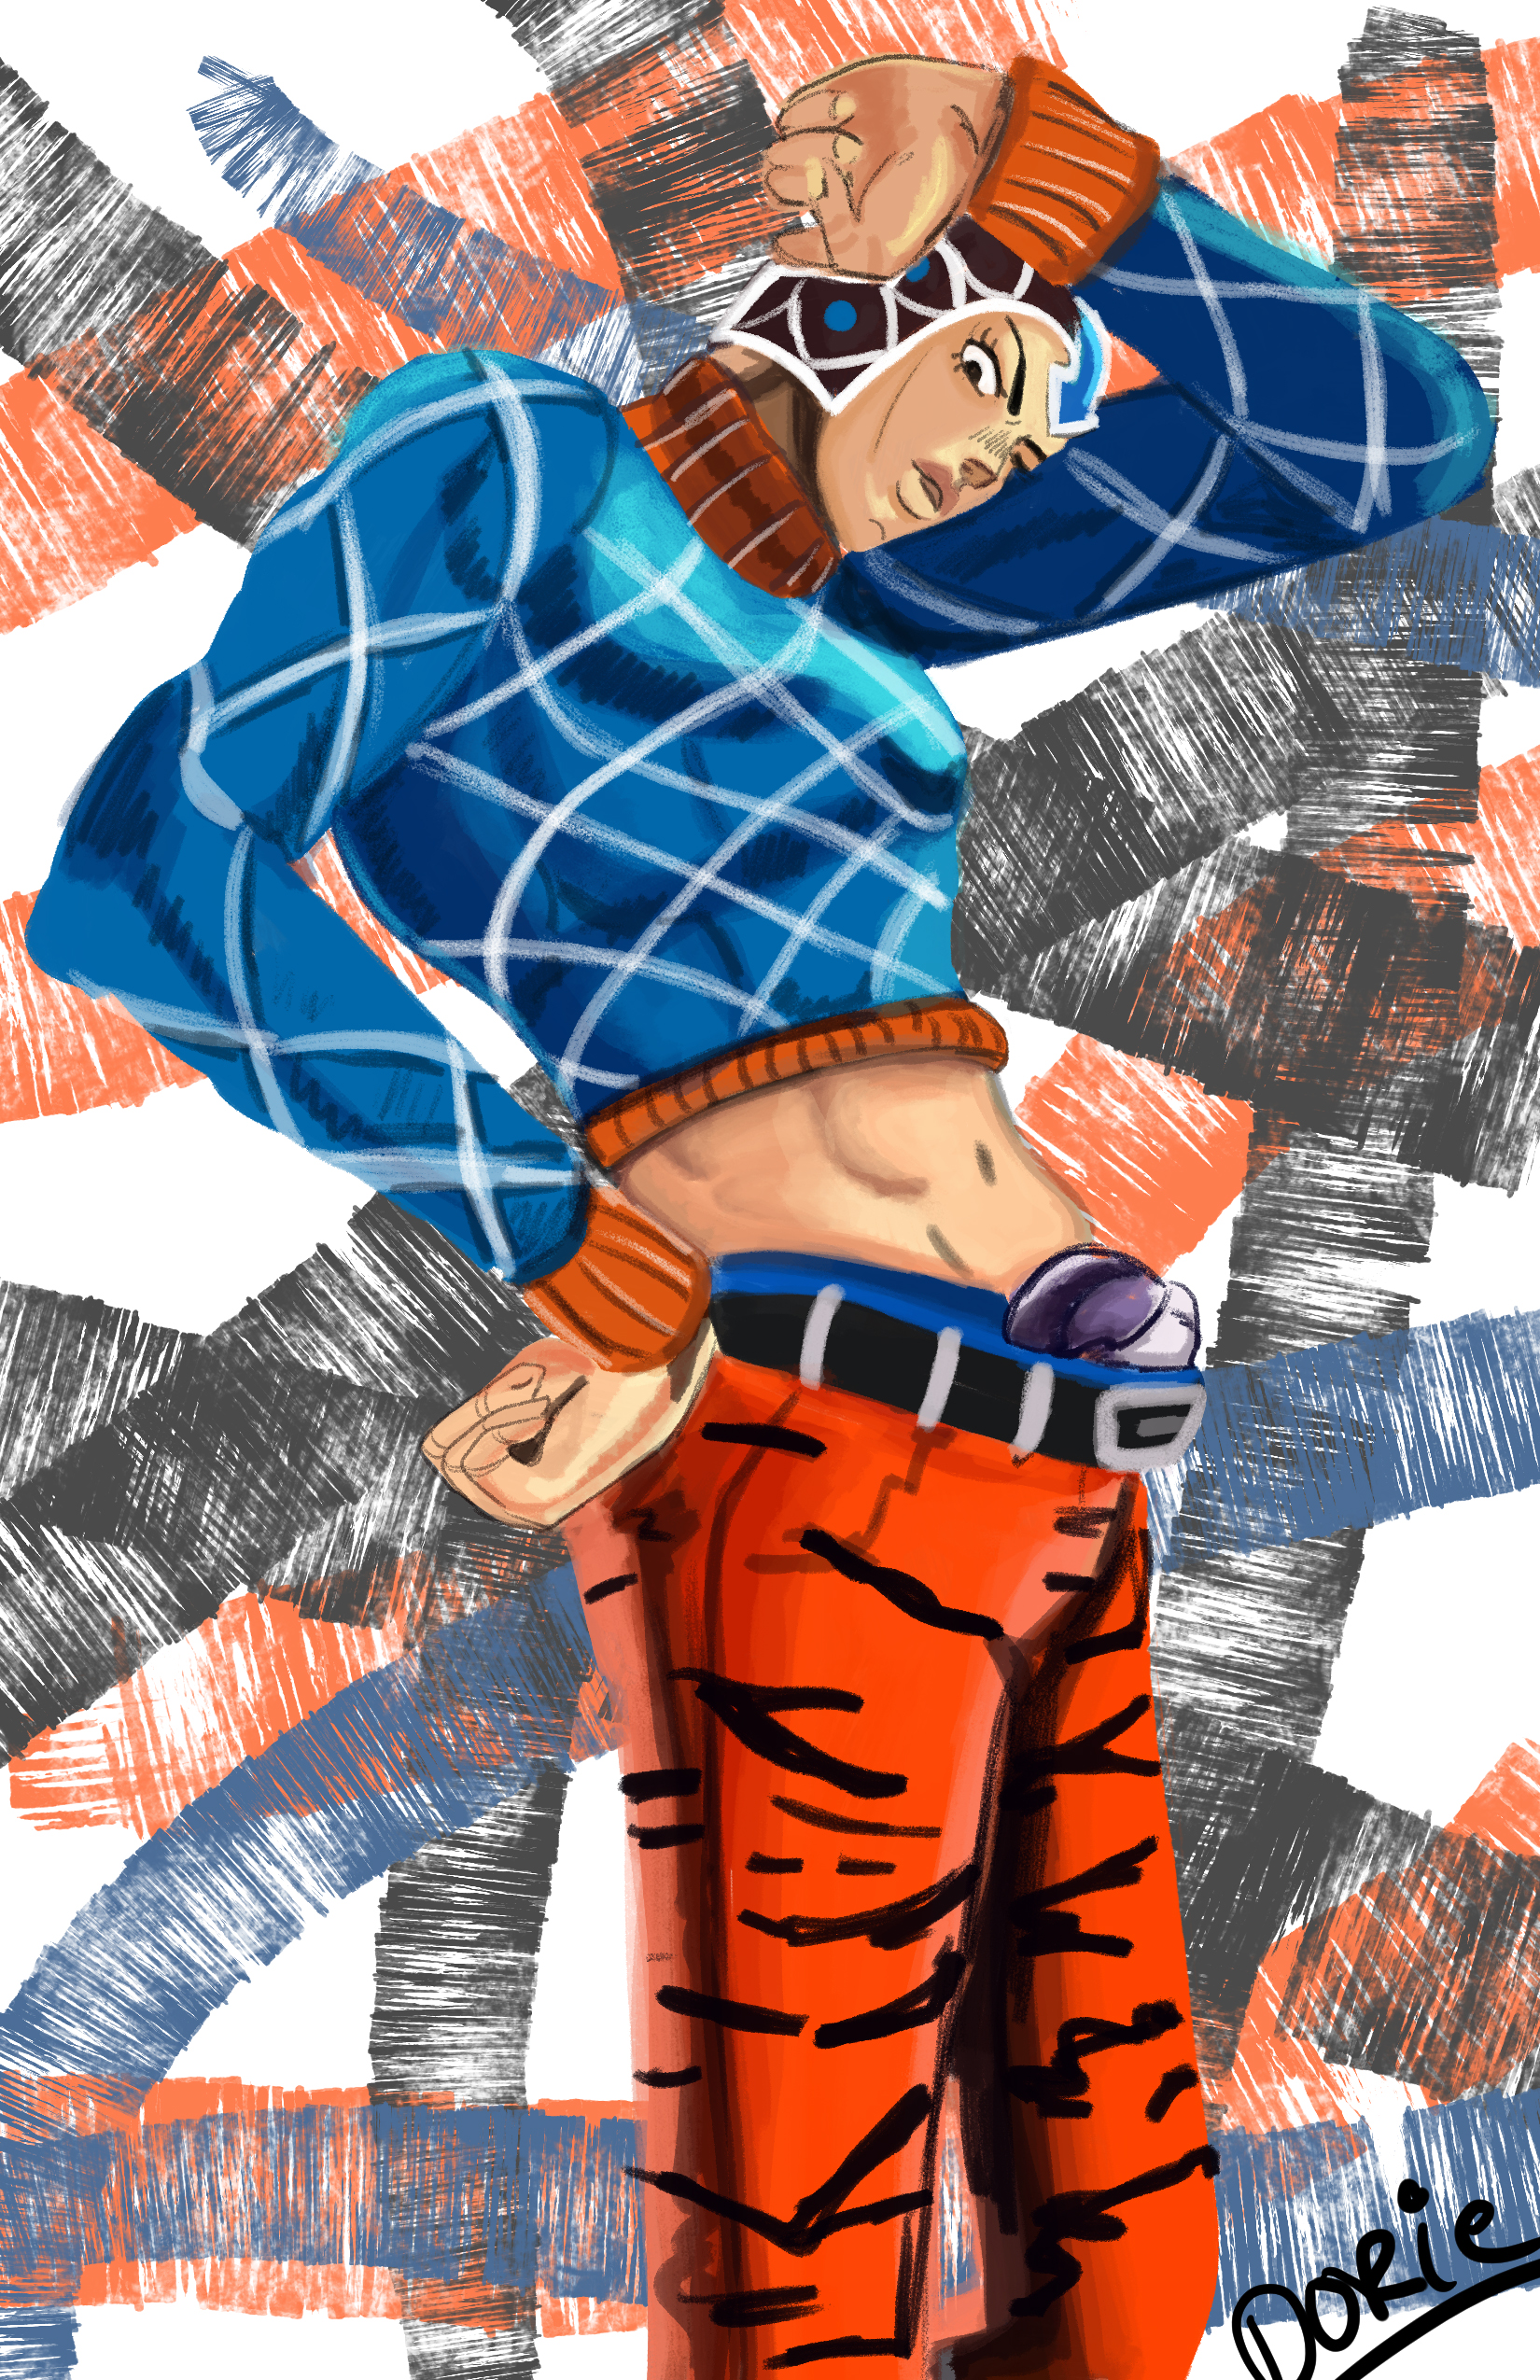 BEST PIECE SO FAR - Here is a portrait I did of Mista Guido from JoJo's Bizarre Adventure which the server is based off.